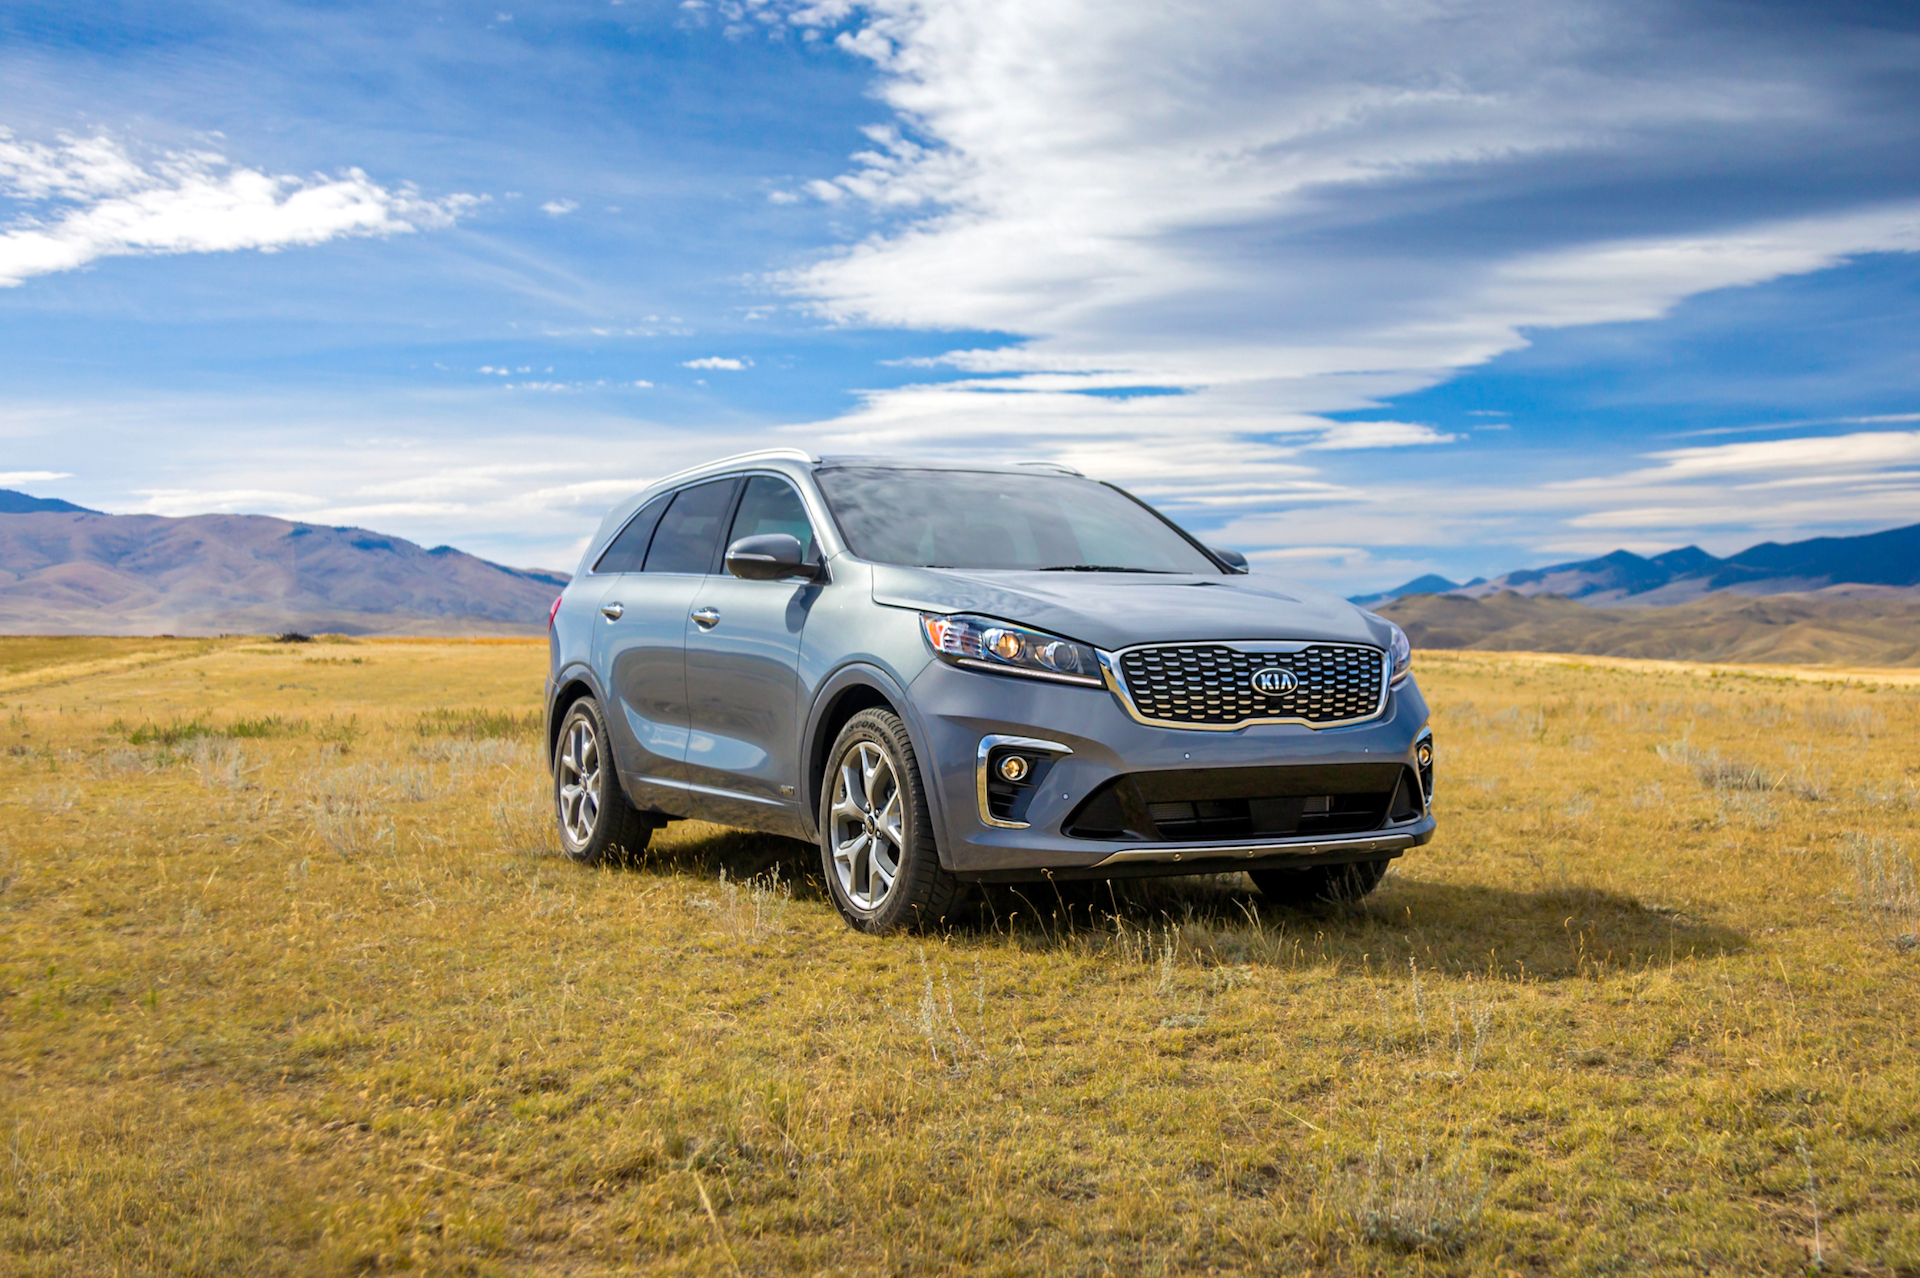 Kia Sorento | Kia Dealer in South Jordan